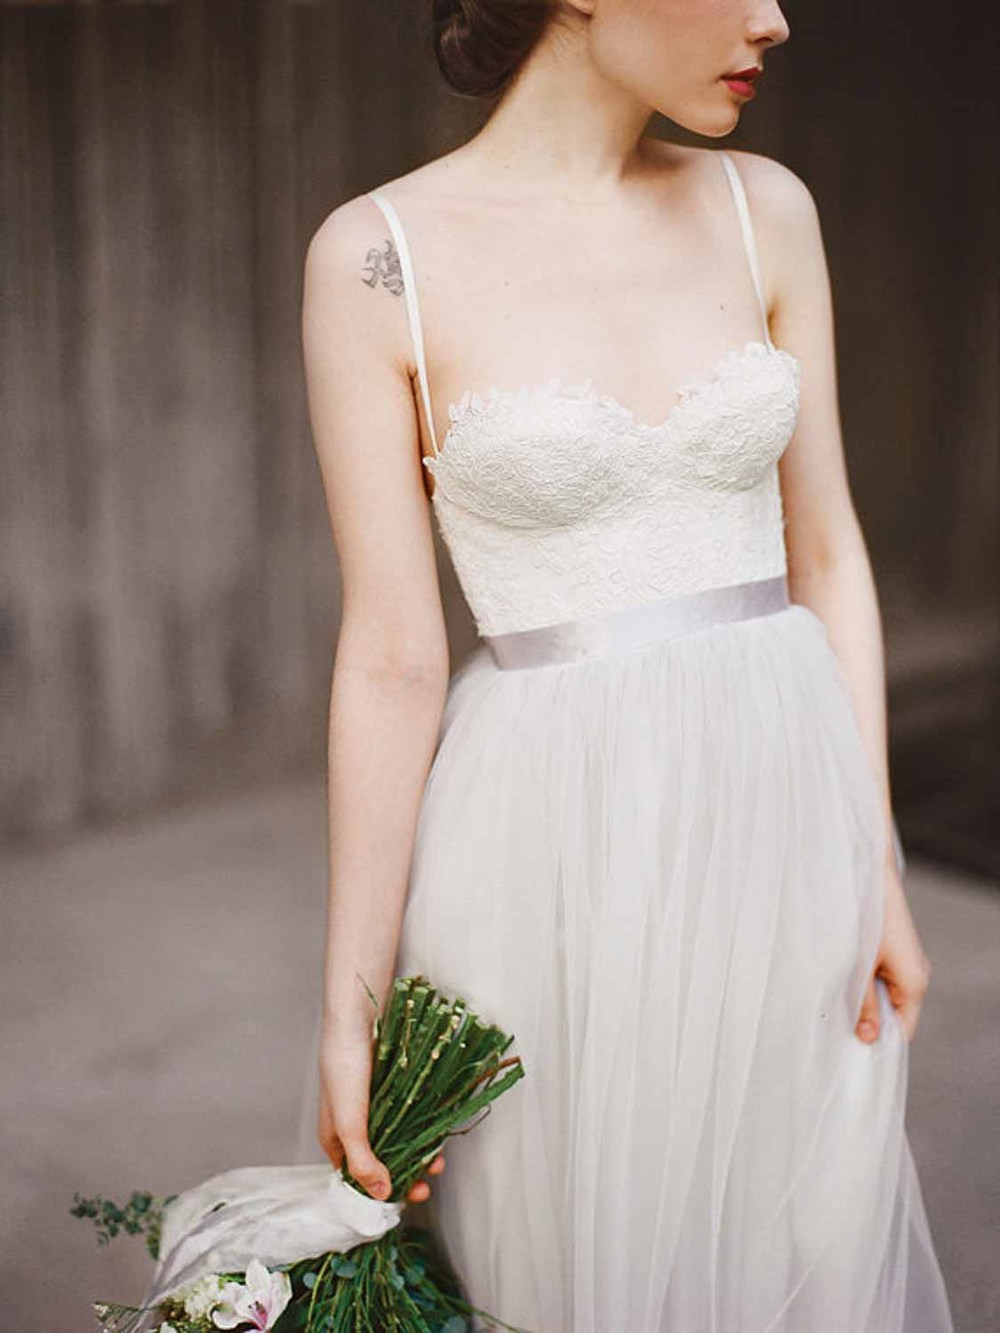 Etsy grey wedding dress close up